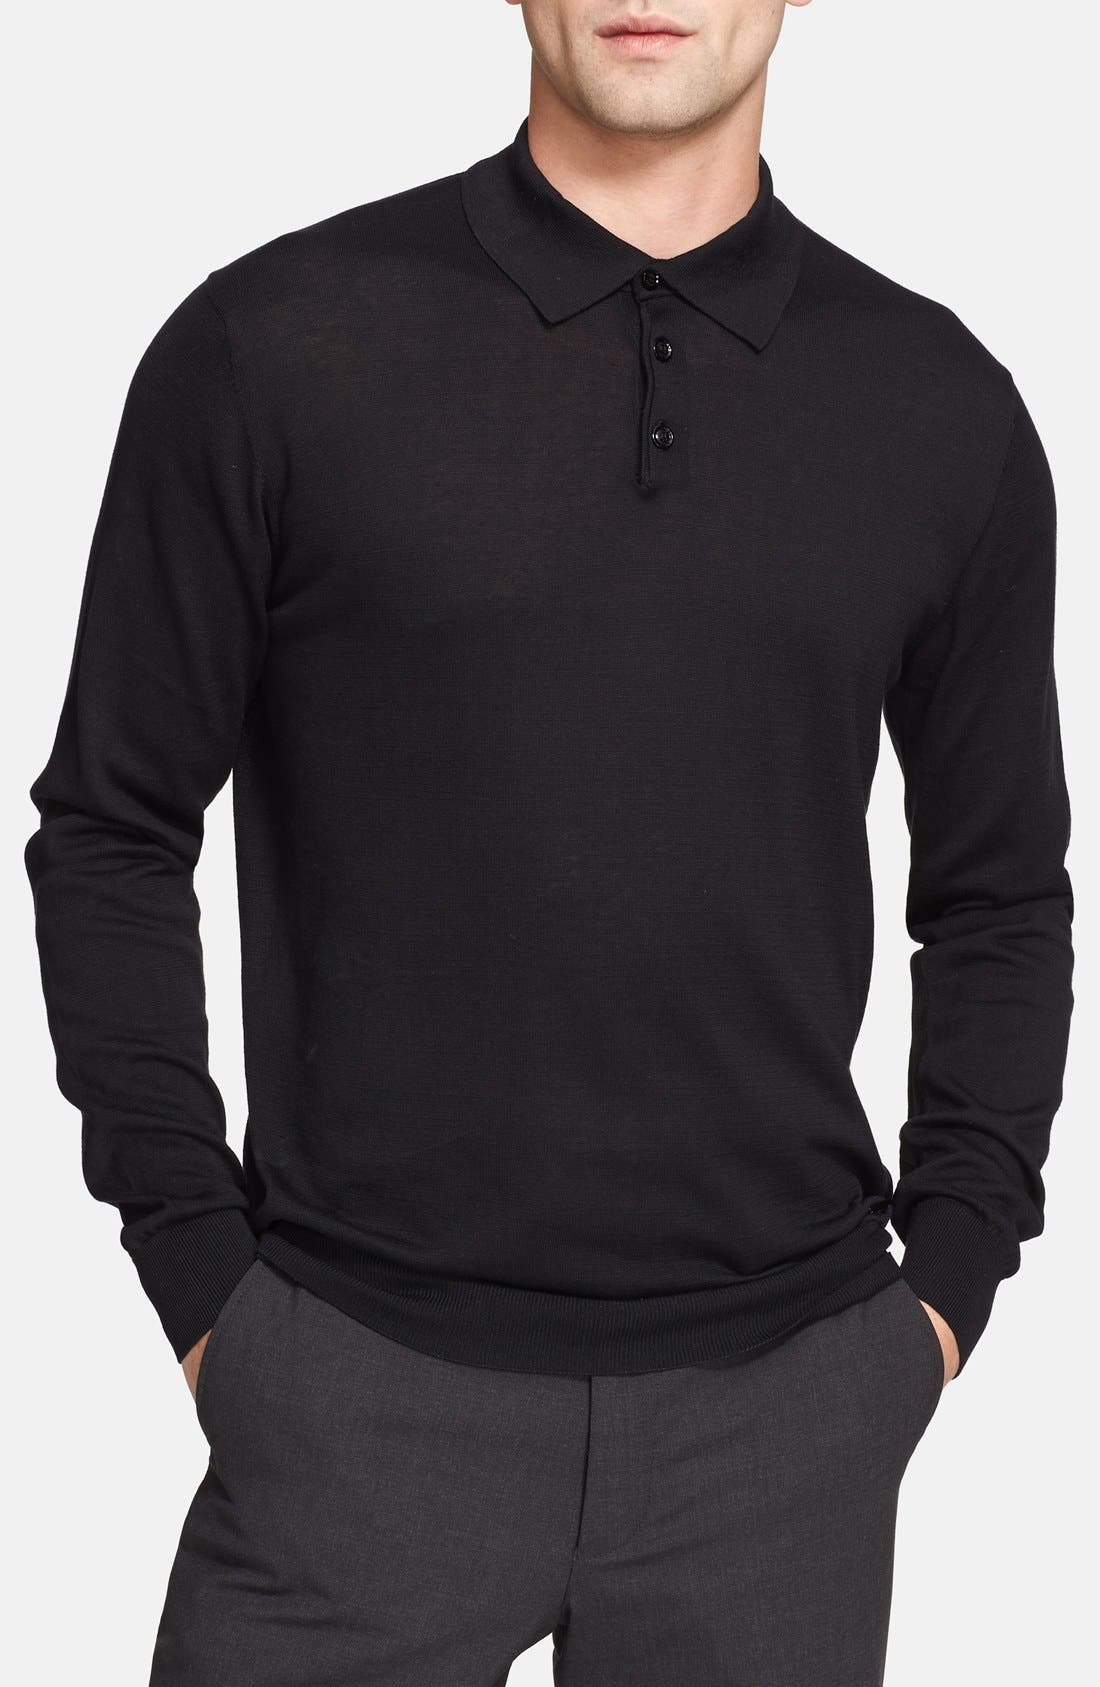 Alternate Image 1 Selected - Armani Collezioni Textured Knit Polo